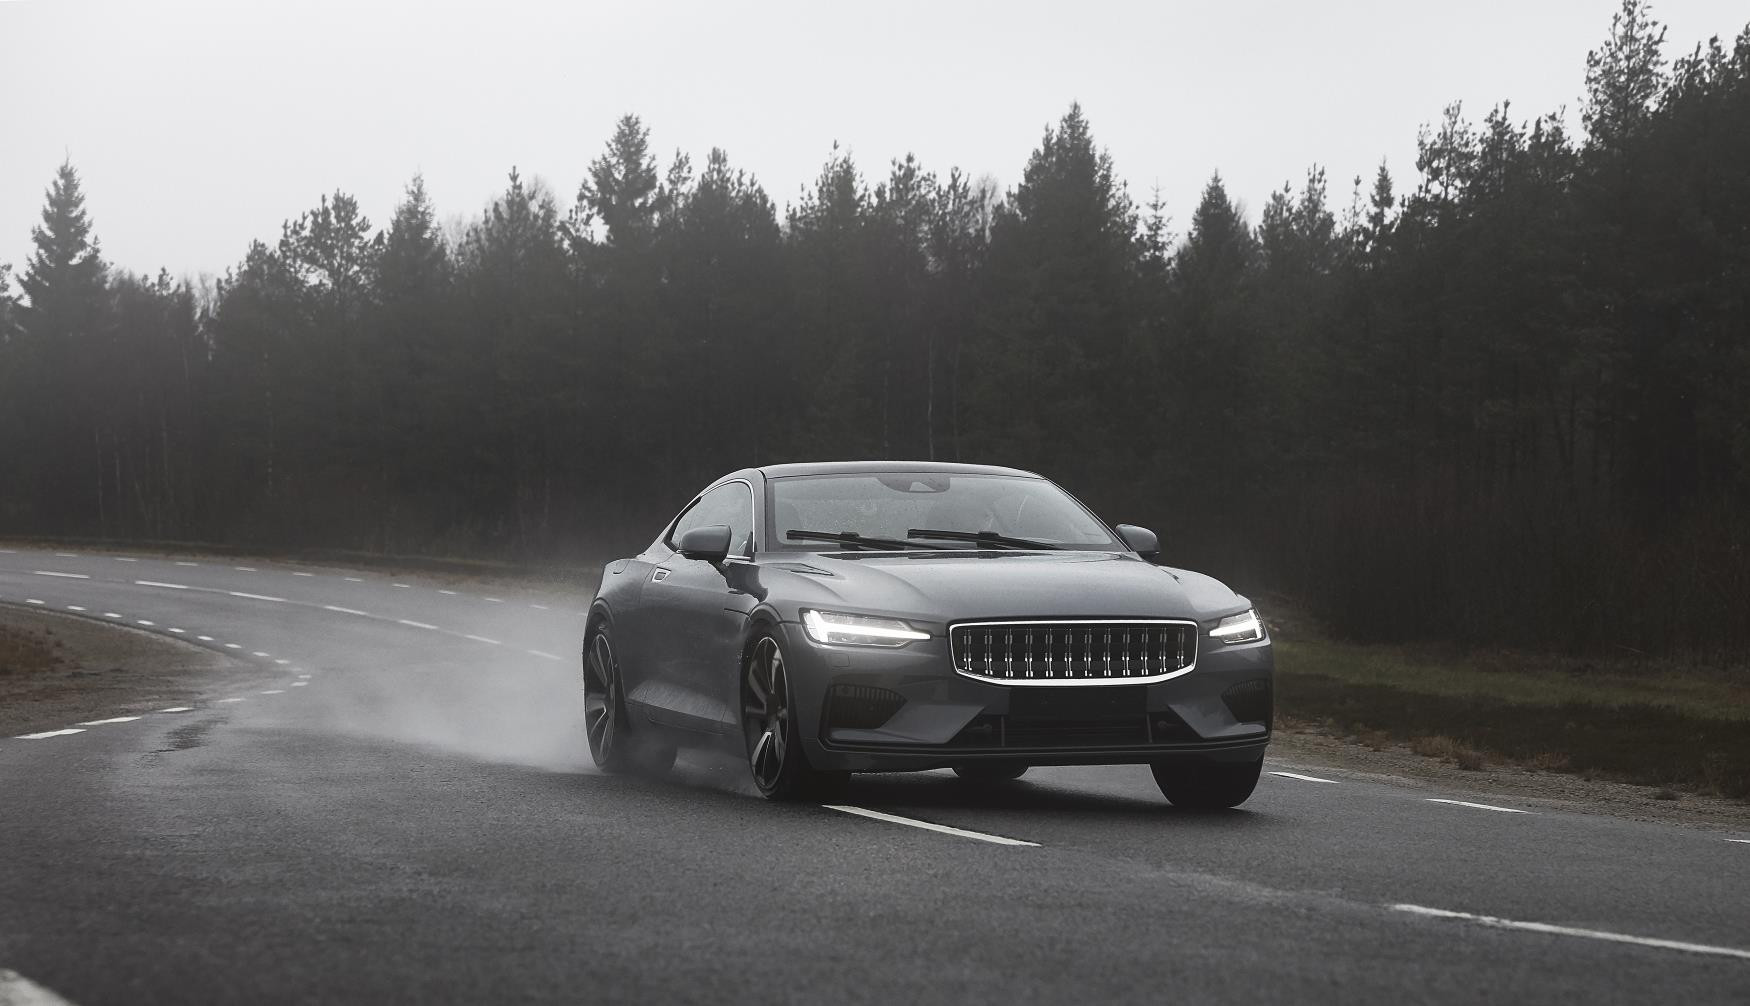 Grey Polestar 1 on test on country road